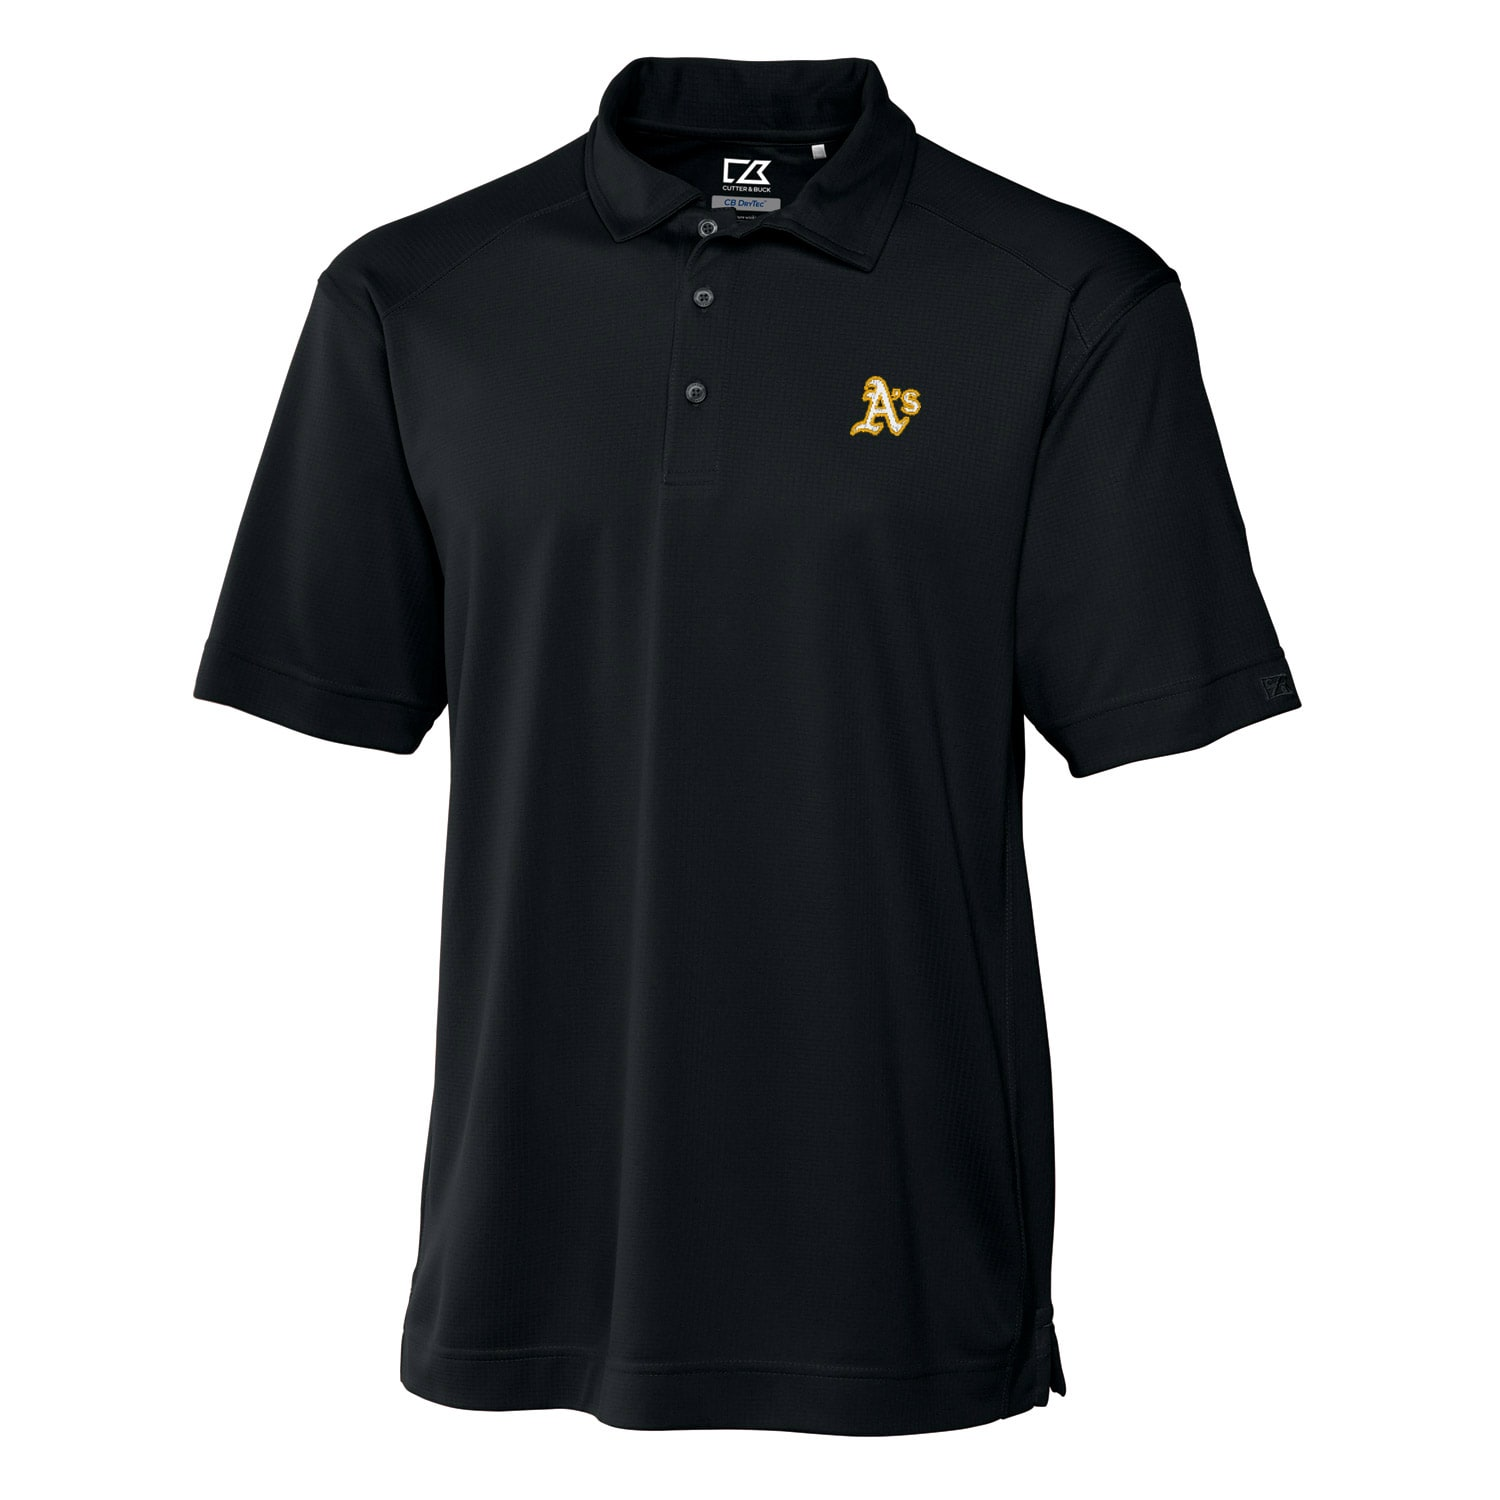 Oakland Athletics Cutter & Buck Big & Tall DryTec Genre Polo - Black